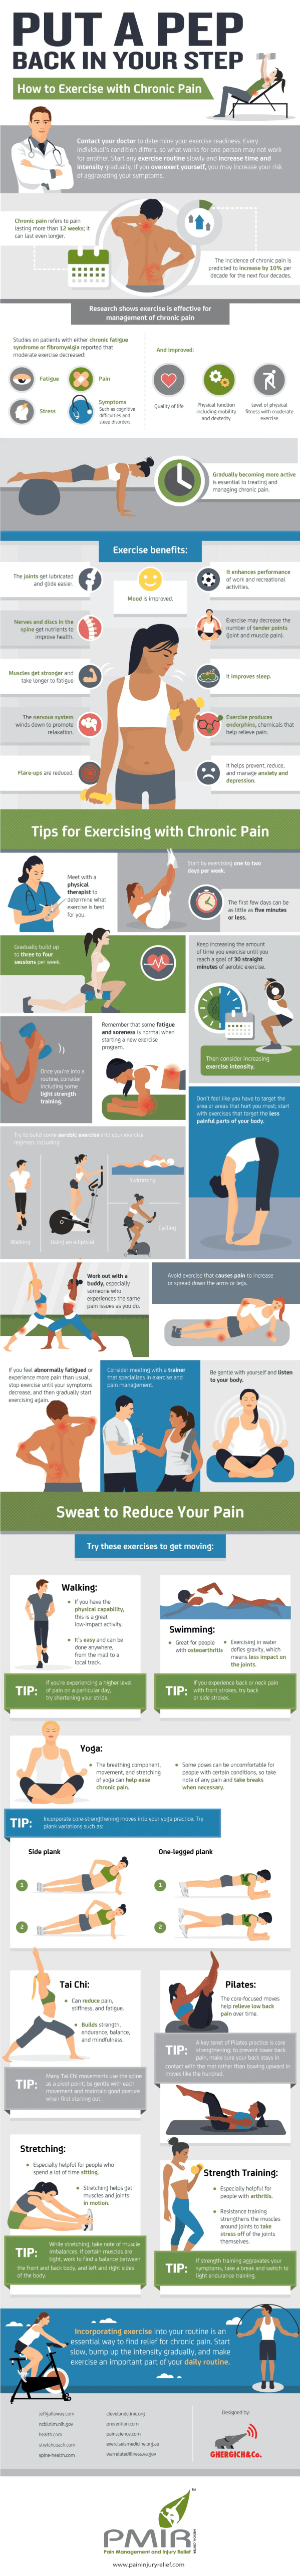 Put a Pep Back in Your Step: How to Exercise with Chronic Pain